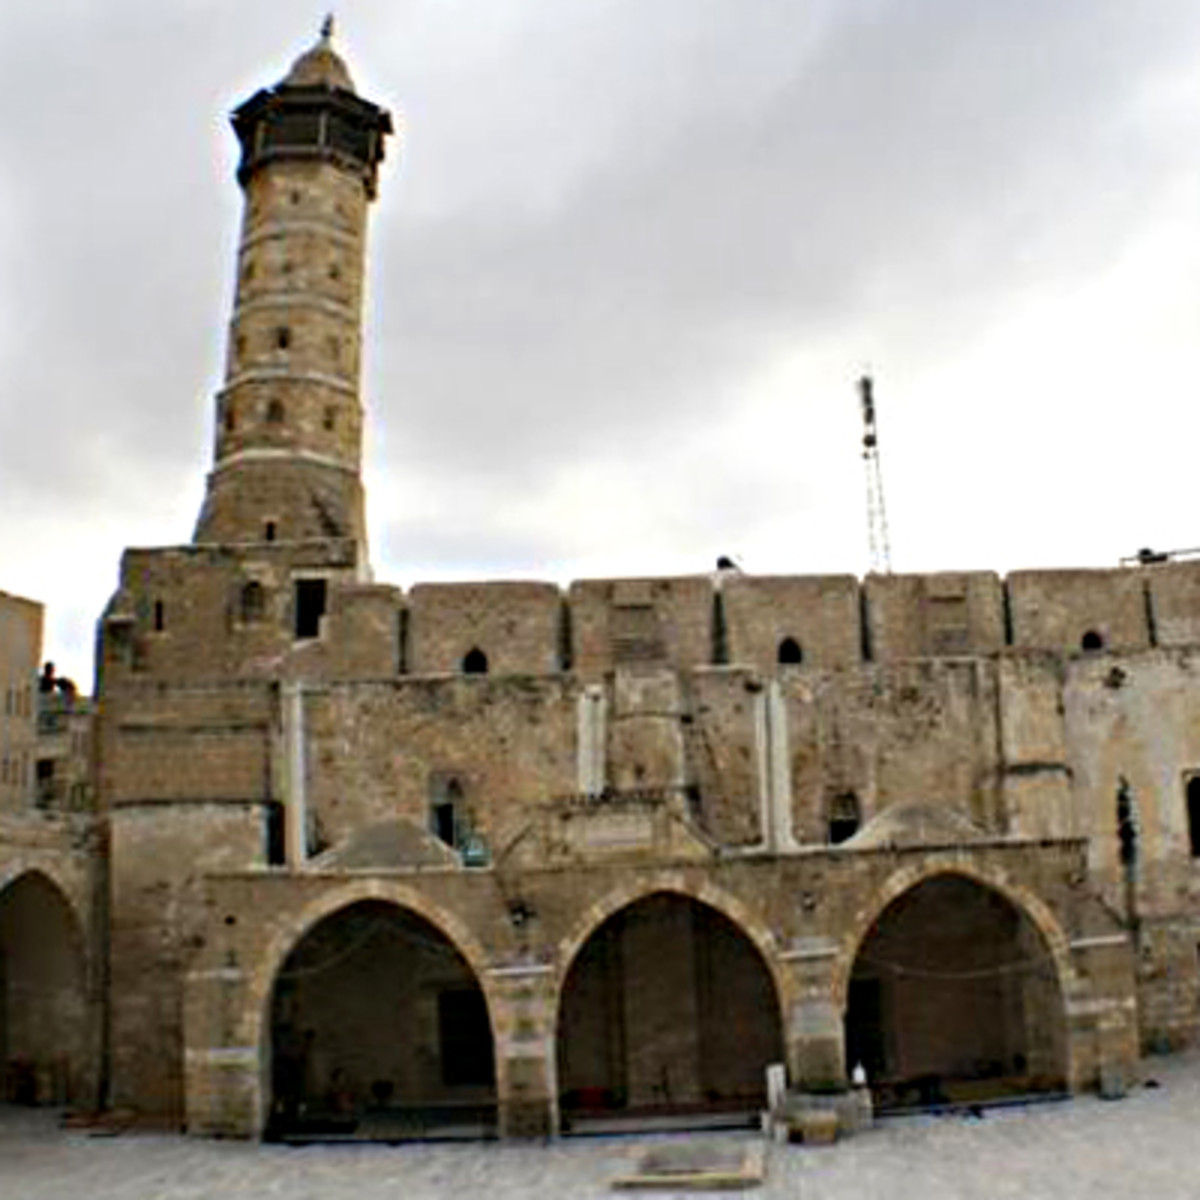 The al-Omari Mosque was the oldest religious site of the Gaza Strip in Palestine. Israel bombed it in 2014